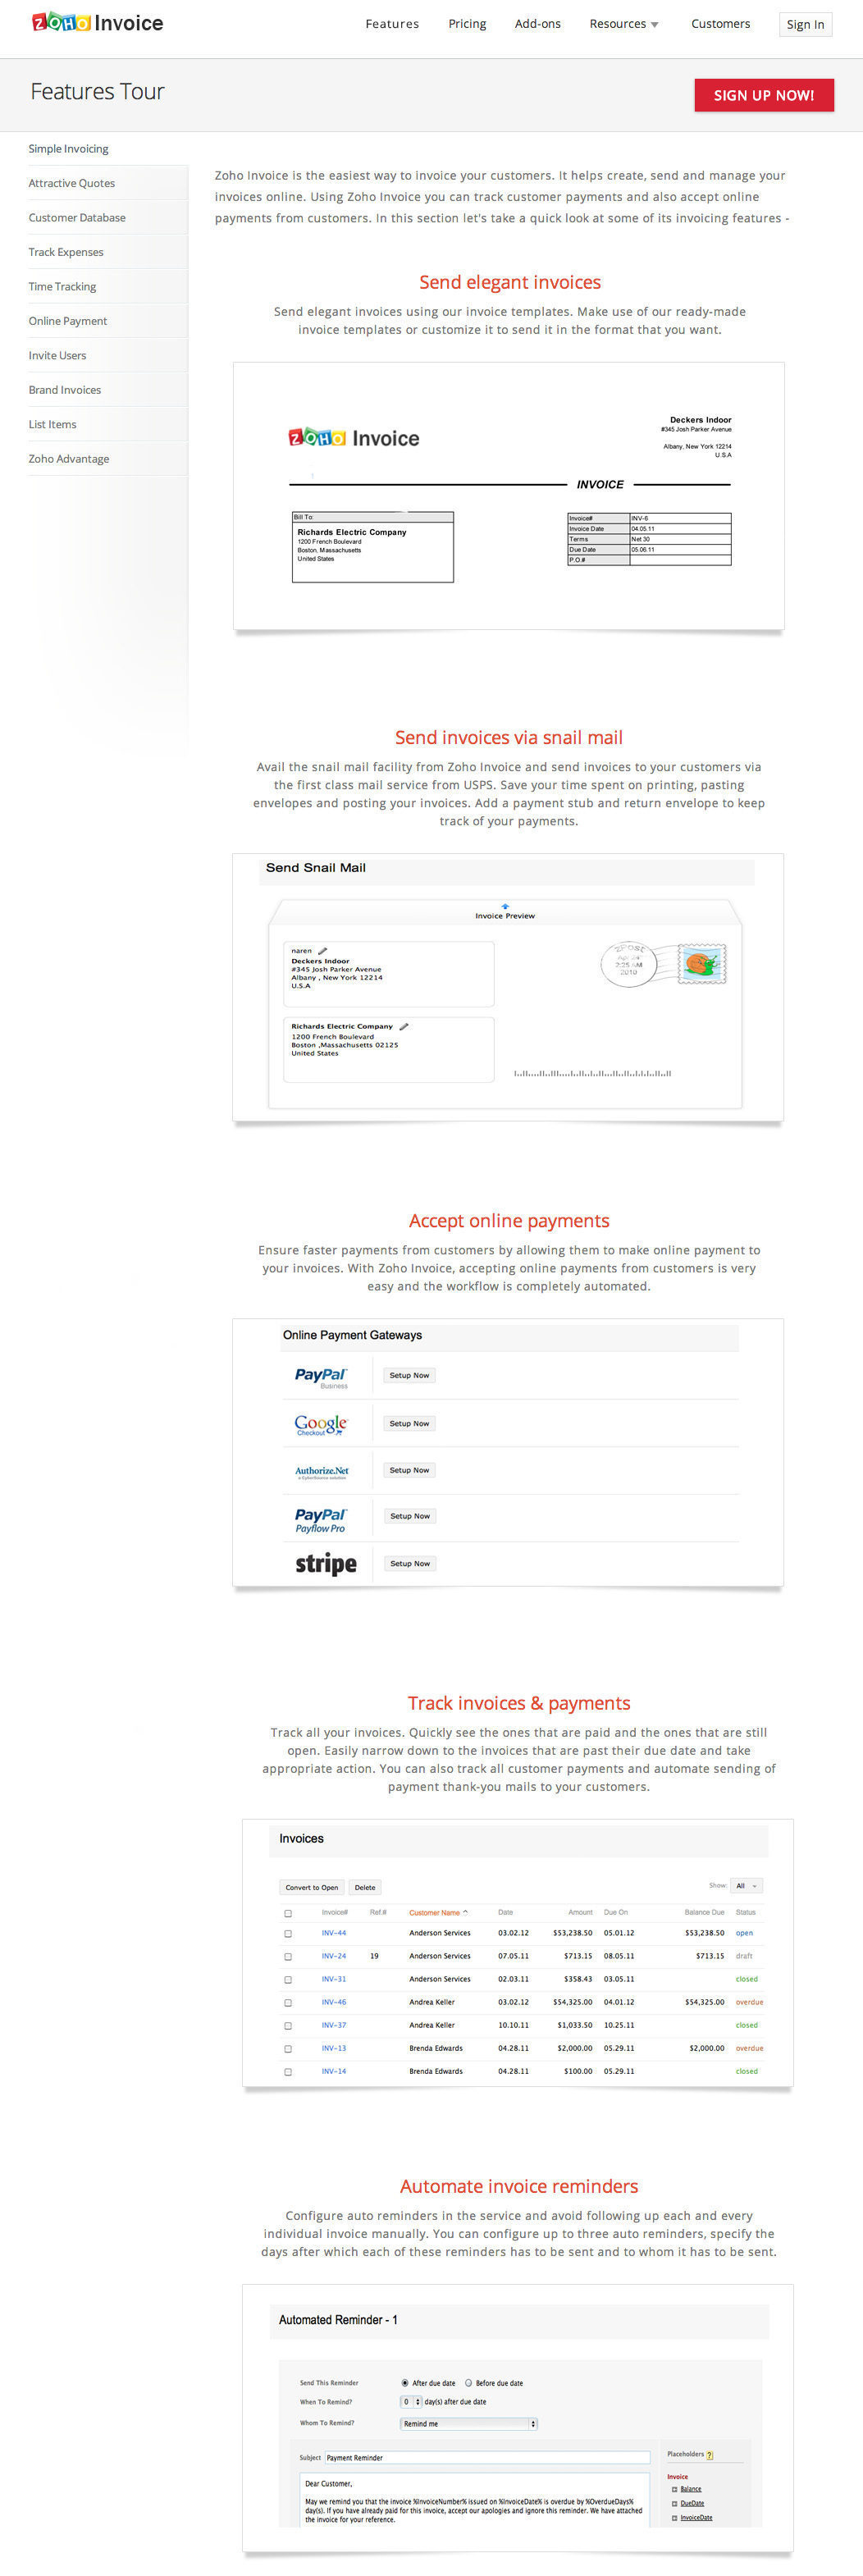 Usdgus  Personable Top  Complaints And Reviews About Zoho Invoice With Luxury Zoho Invoice Pricing Zoho Invoice  Simple Invoicing  With Awesome Printable Blank Invoice Forms Also Invoice Sample Download In Addition Caricom Invoice Template And Best Invoice Software Mac As Well As Best Mac Invoice Software Additionally Invoice For Consulting From Consumeraffairscom With Usdgus  Luxury Top  Complaints And Reviews About Zoho Invoice With Awesome Zoho Invoice Pricing Zoho Invoice  Simple Invoicing  And Personable Printable Blank Invoice Forms Also Invoice Sample Download In Addition Caricom Invoice Template From Consumeraffairscom